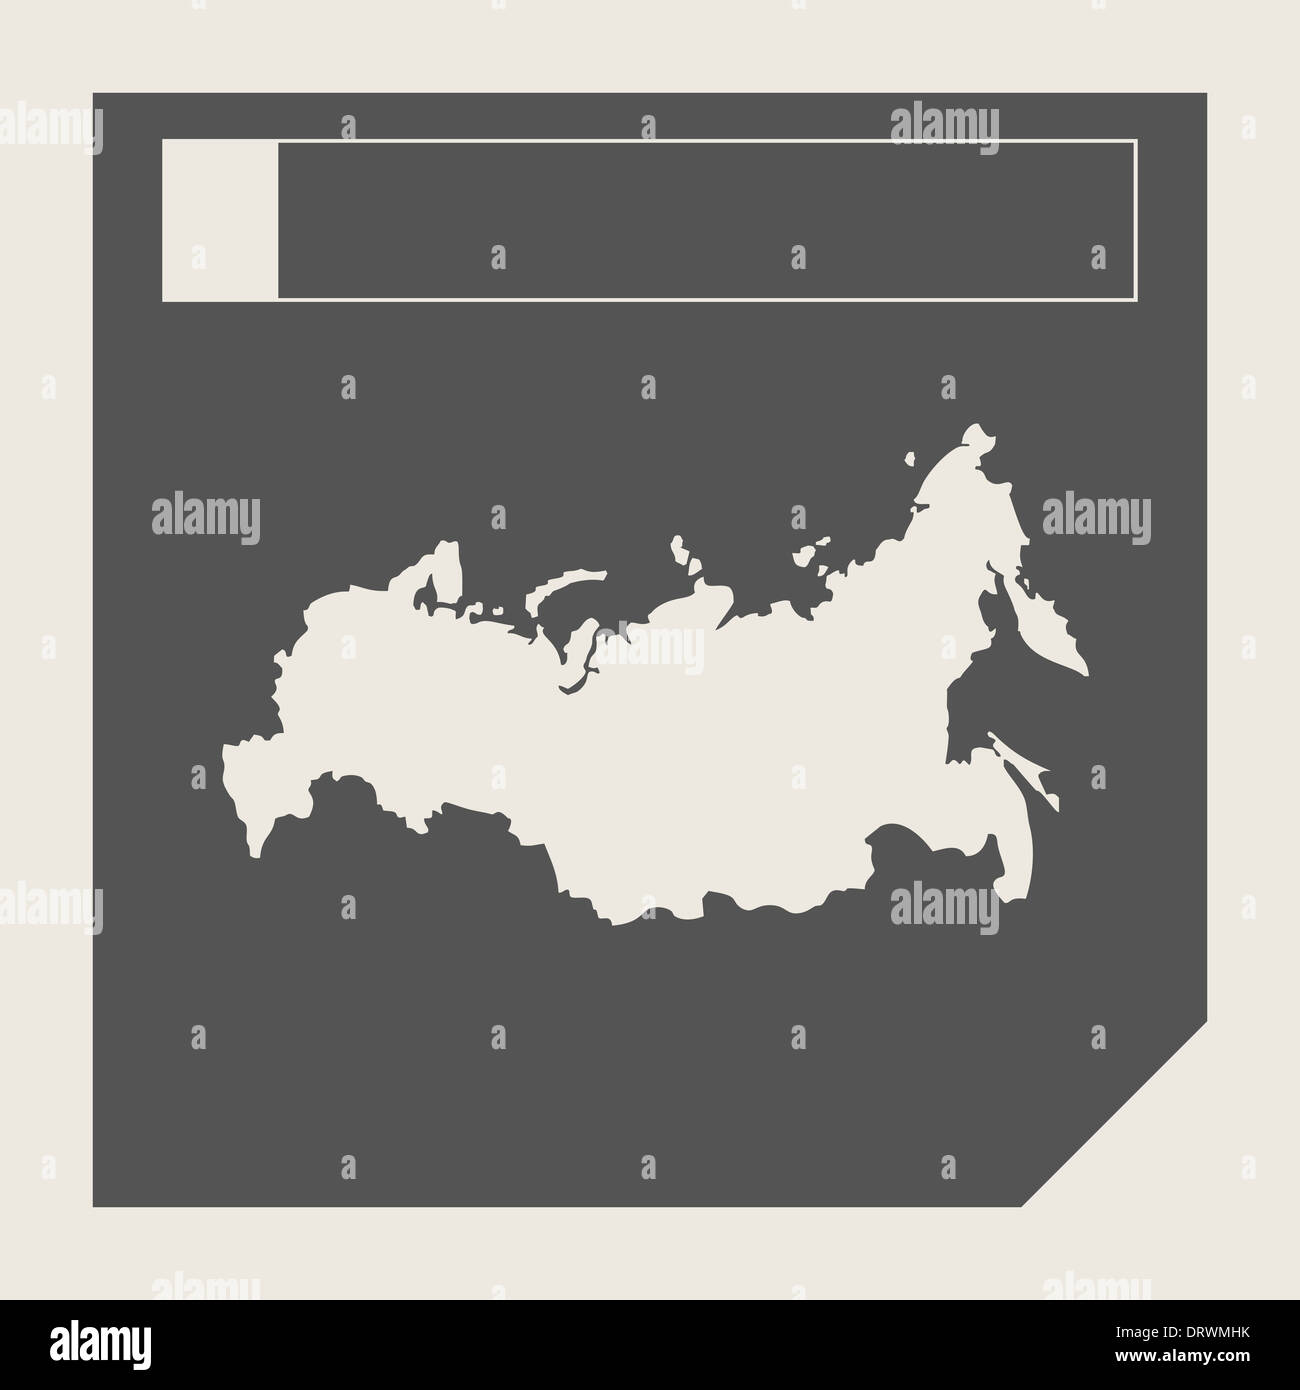 Russia map on in responsive flat web design map on ... on flat united states map, flat eurasia map, flat great britain map, flat country map, flat europe map, flat us map, flat africa map, flat world maps,